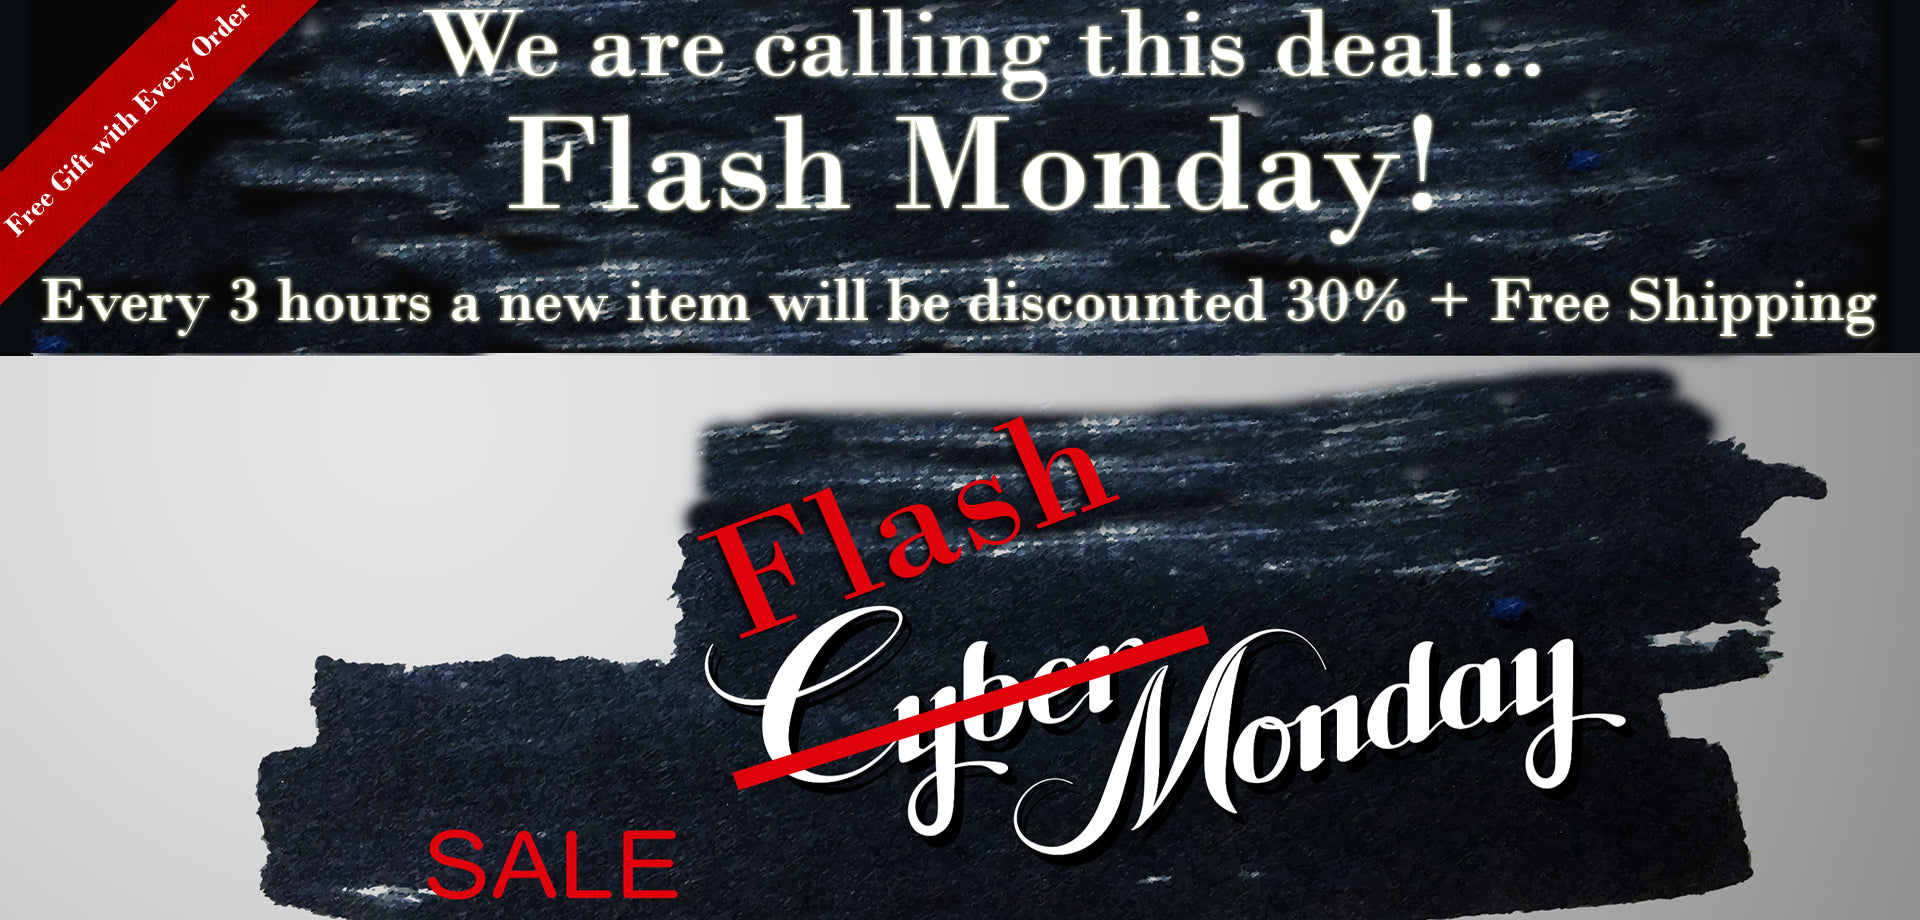 Flash Monday Sale - 30% Off + Free Shipping + Free Gift